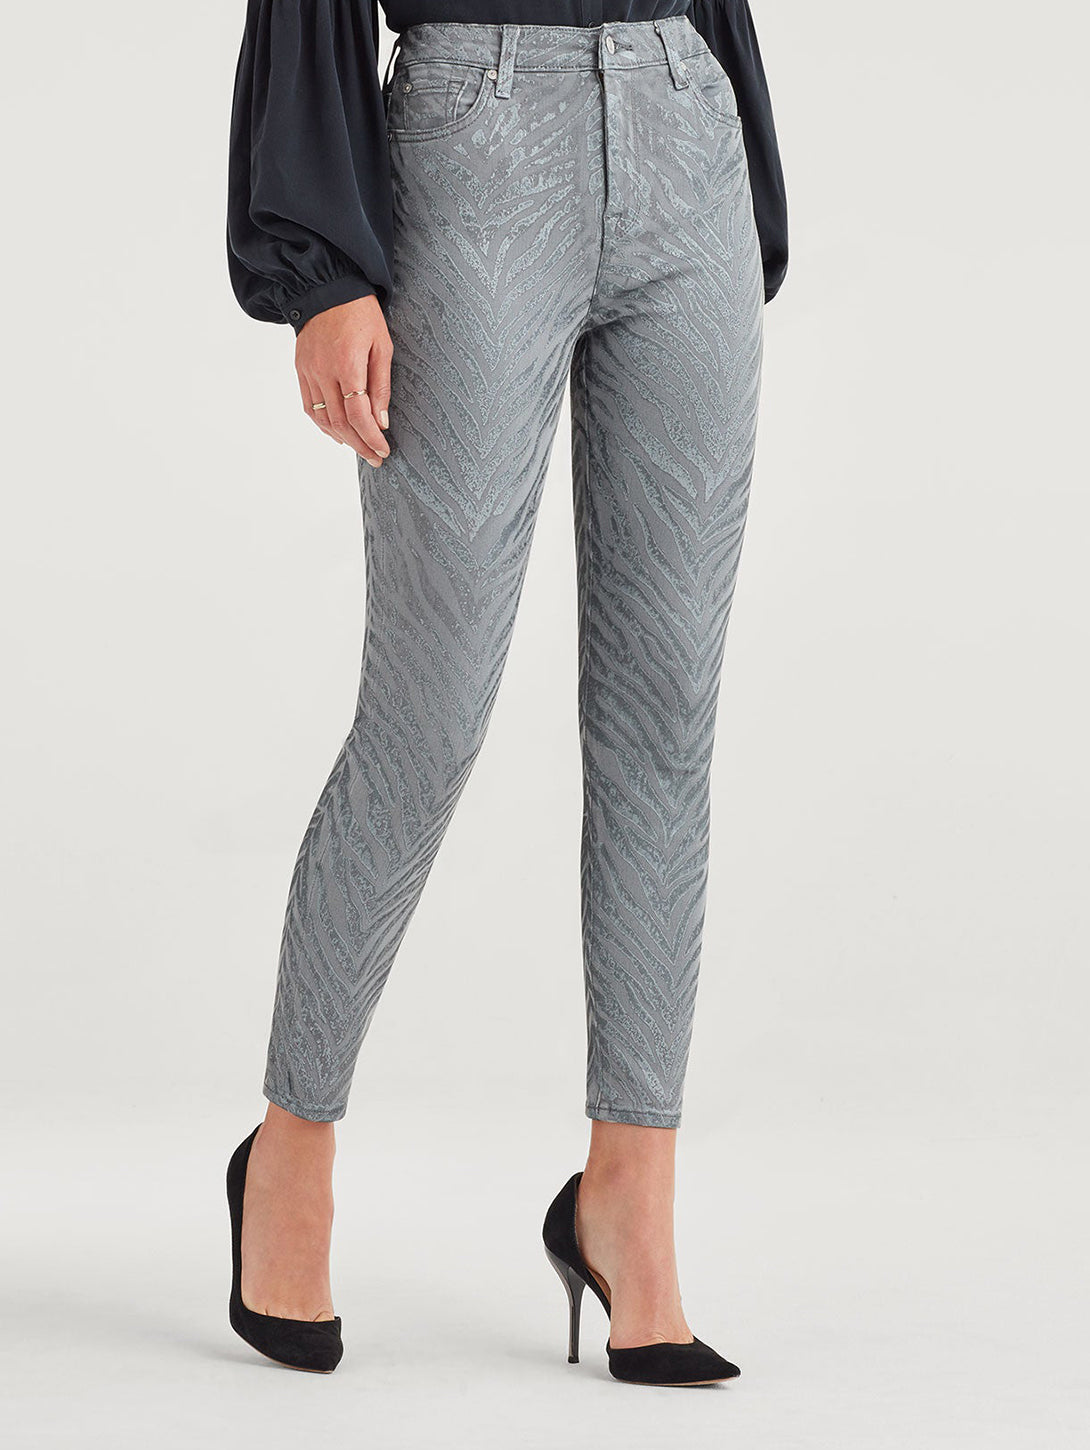 High Waist Ankle Skinny Jean - Metalic Zebra-Seven for all Mankind-Over the Rainbow